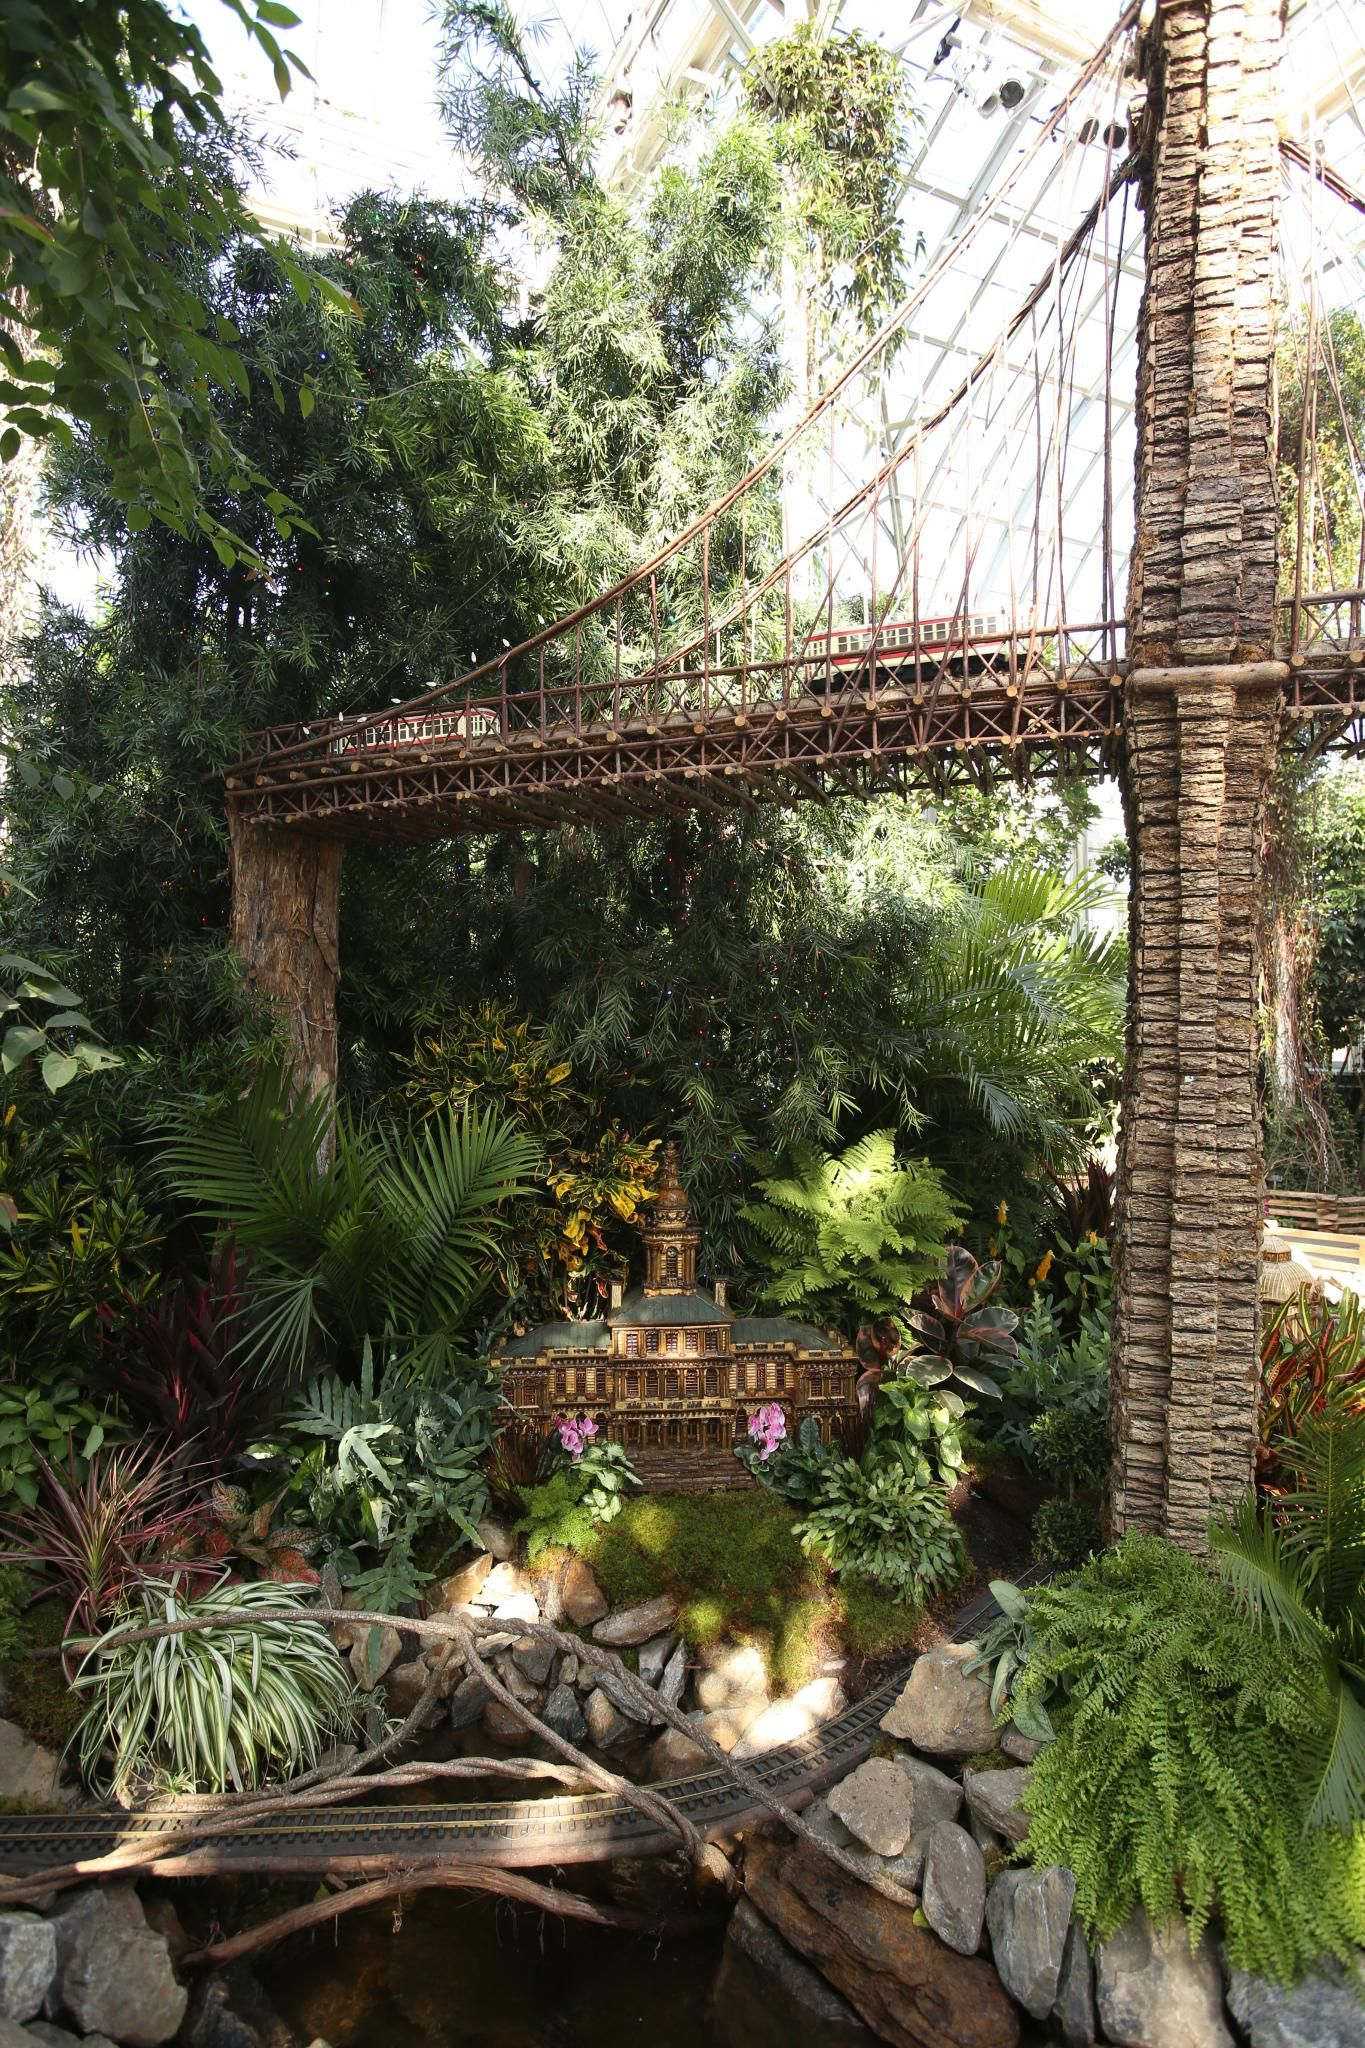 The Holiday Train Show at the New York Botanical Garden, Day 1 #botanicgarden